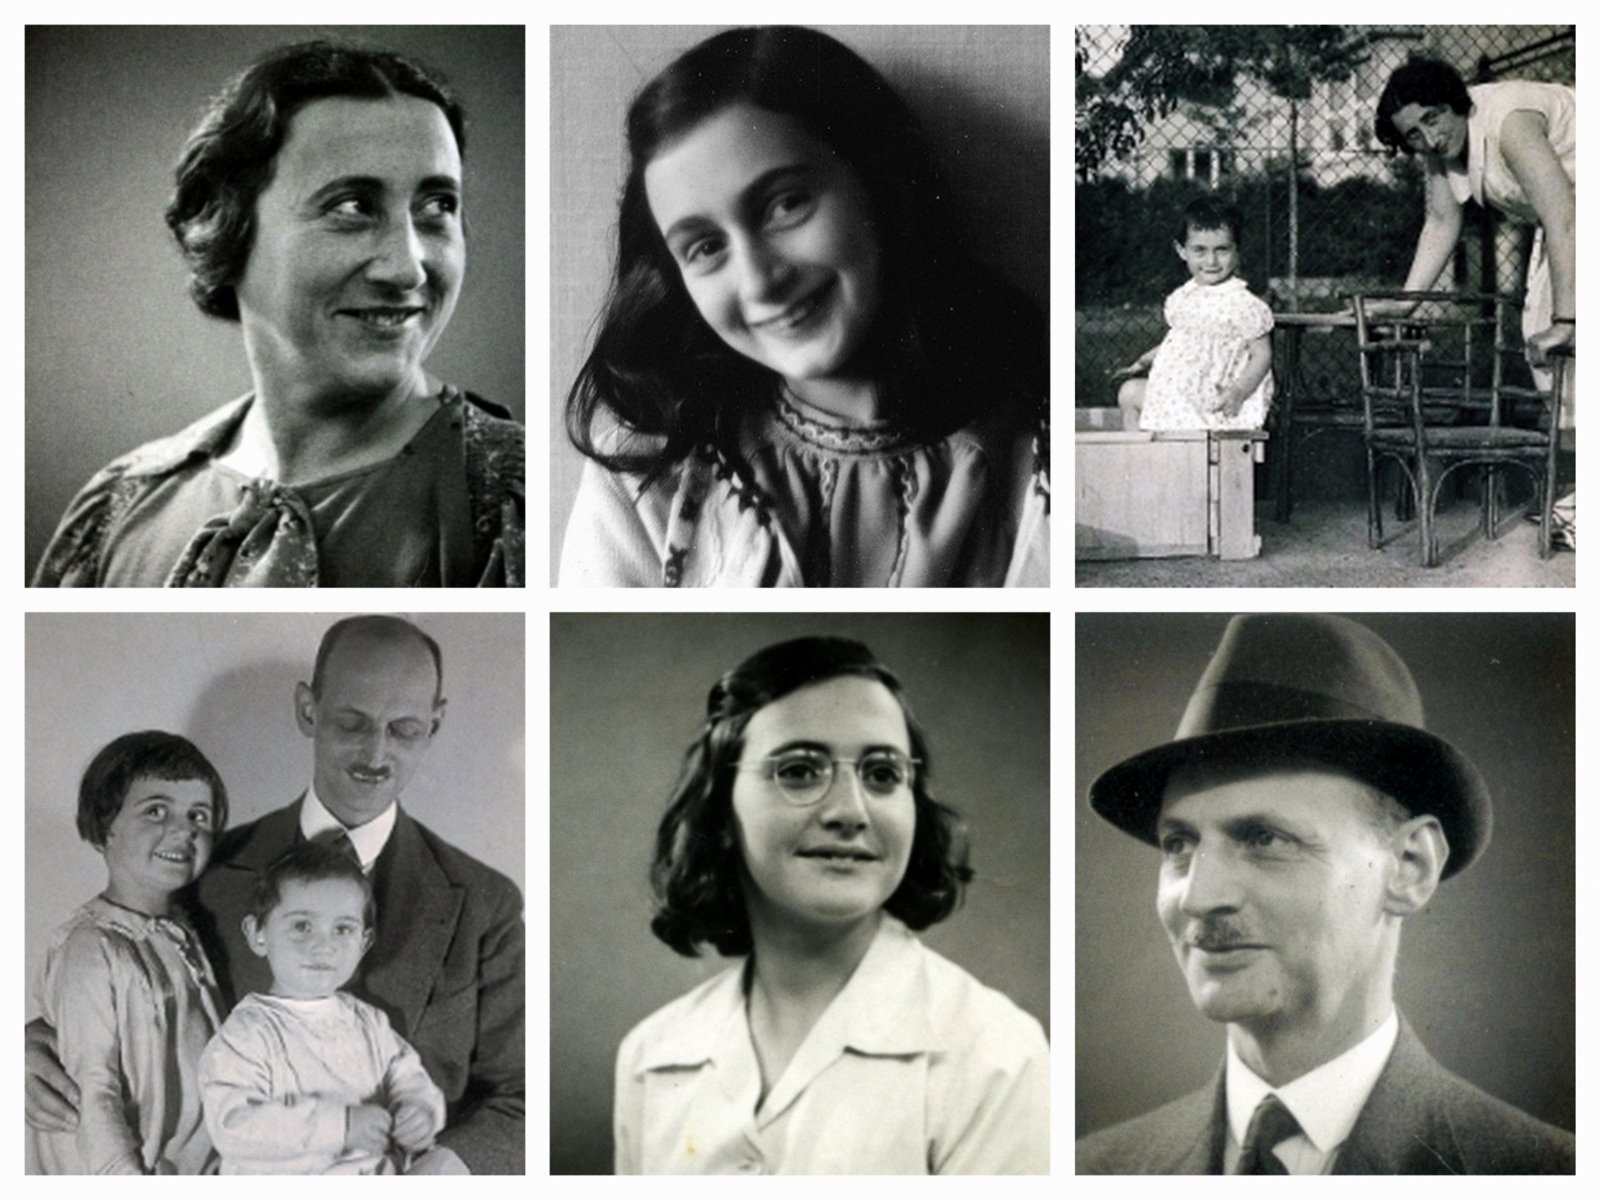 a biography of anne frank and her familys history In her amazing diary, anne frank revealed the challenges and dreams  but  hitler brought her childhood to an end and forced her and her family into hiding   historical and visual reference in an easy-to-read biography written in a way  that.